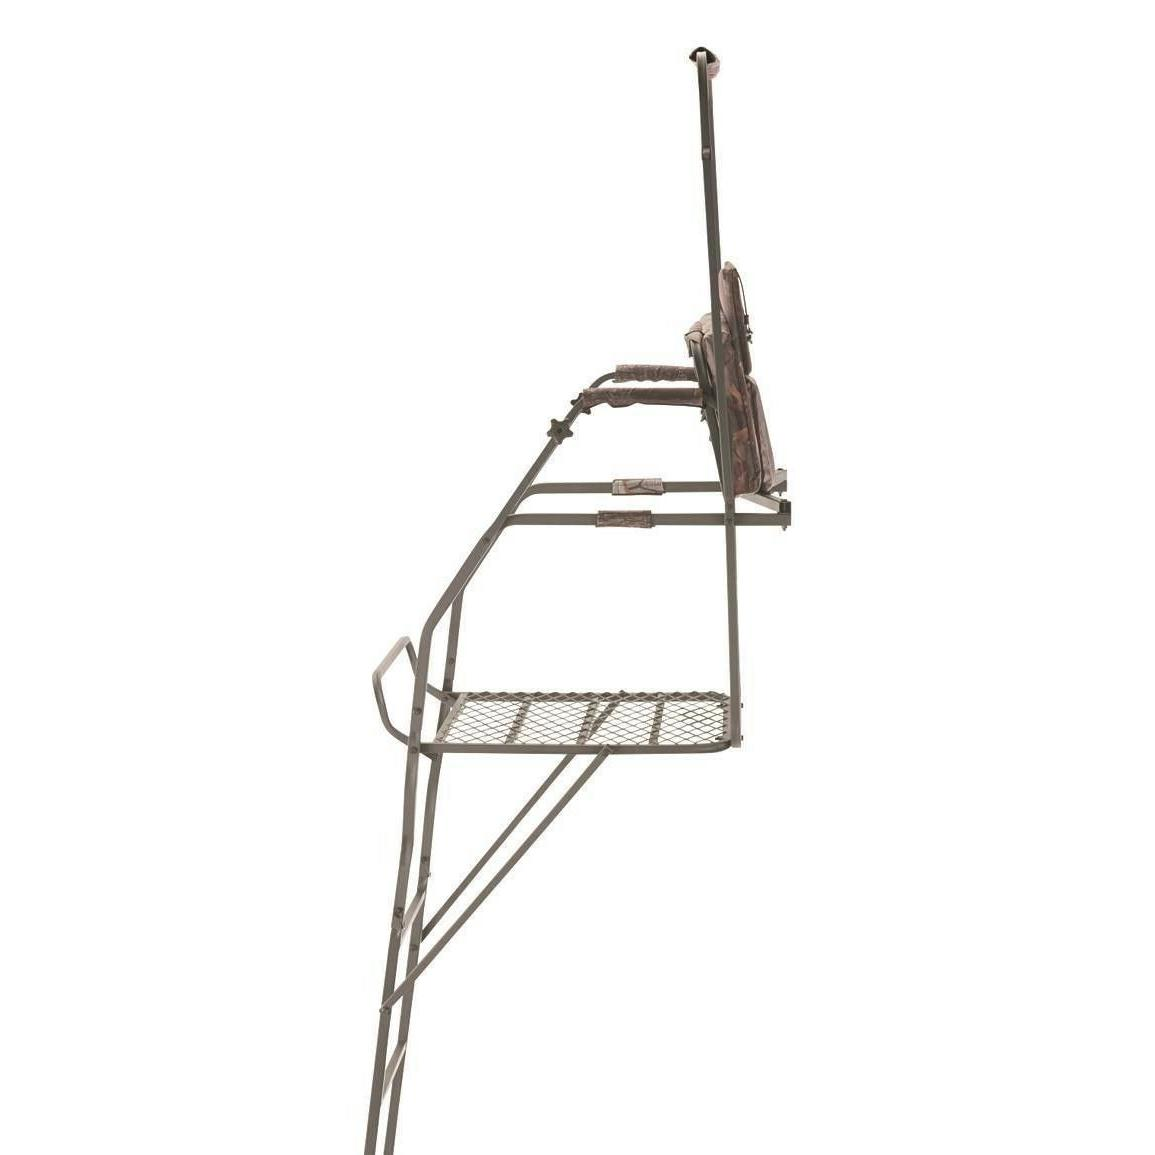 Hunting 18' Ladder Stand Flip-up Shooting Rail